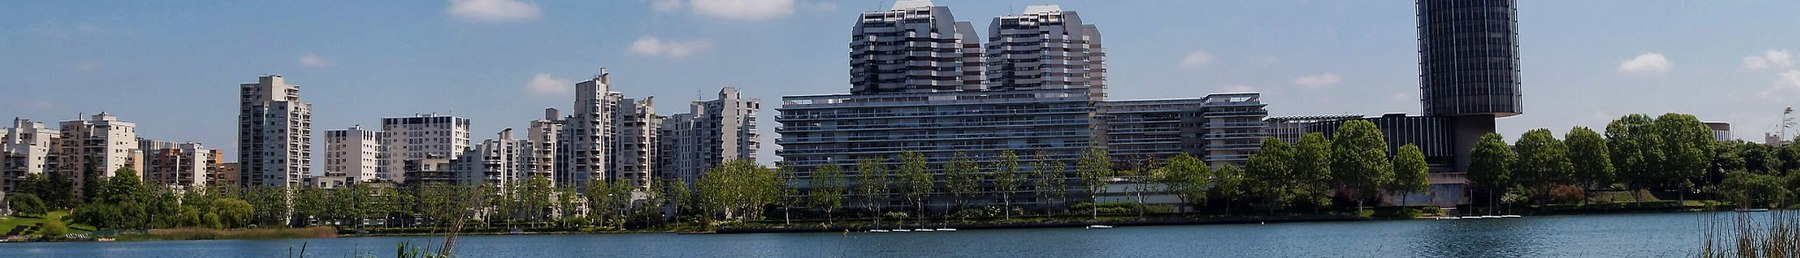 Créteil banner view from the lake.jpg